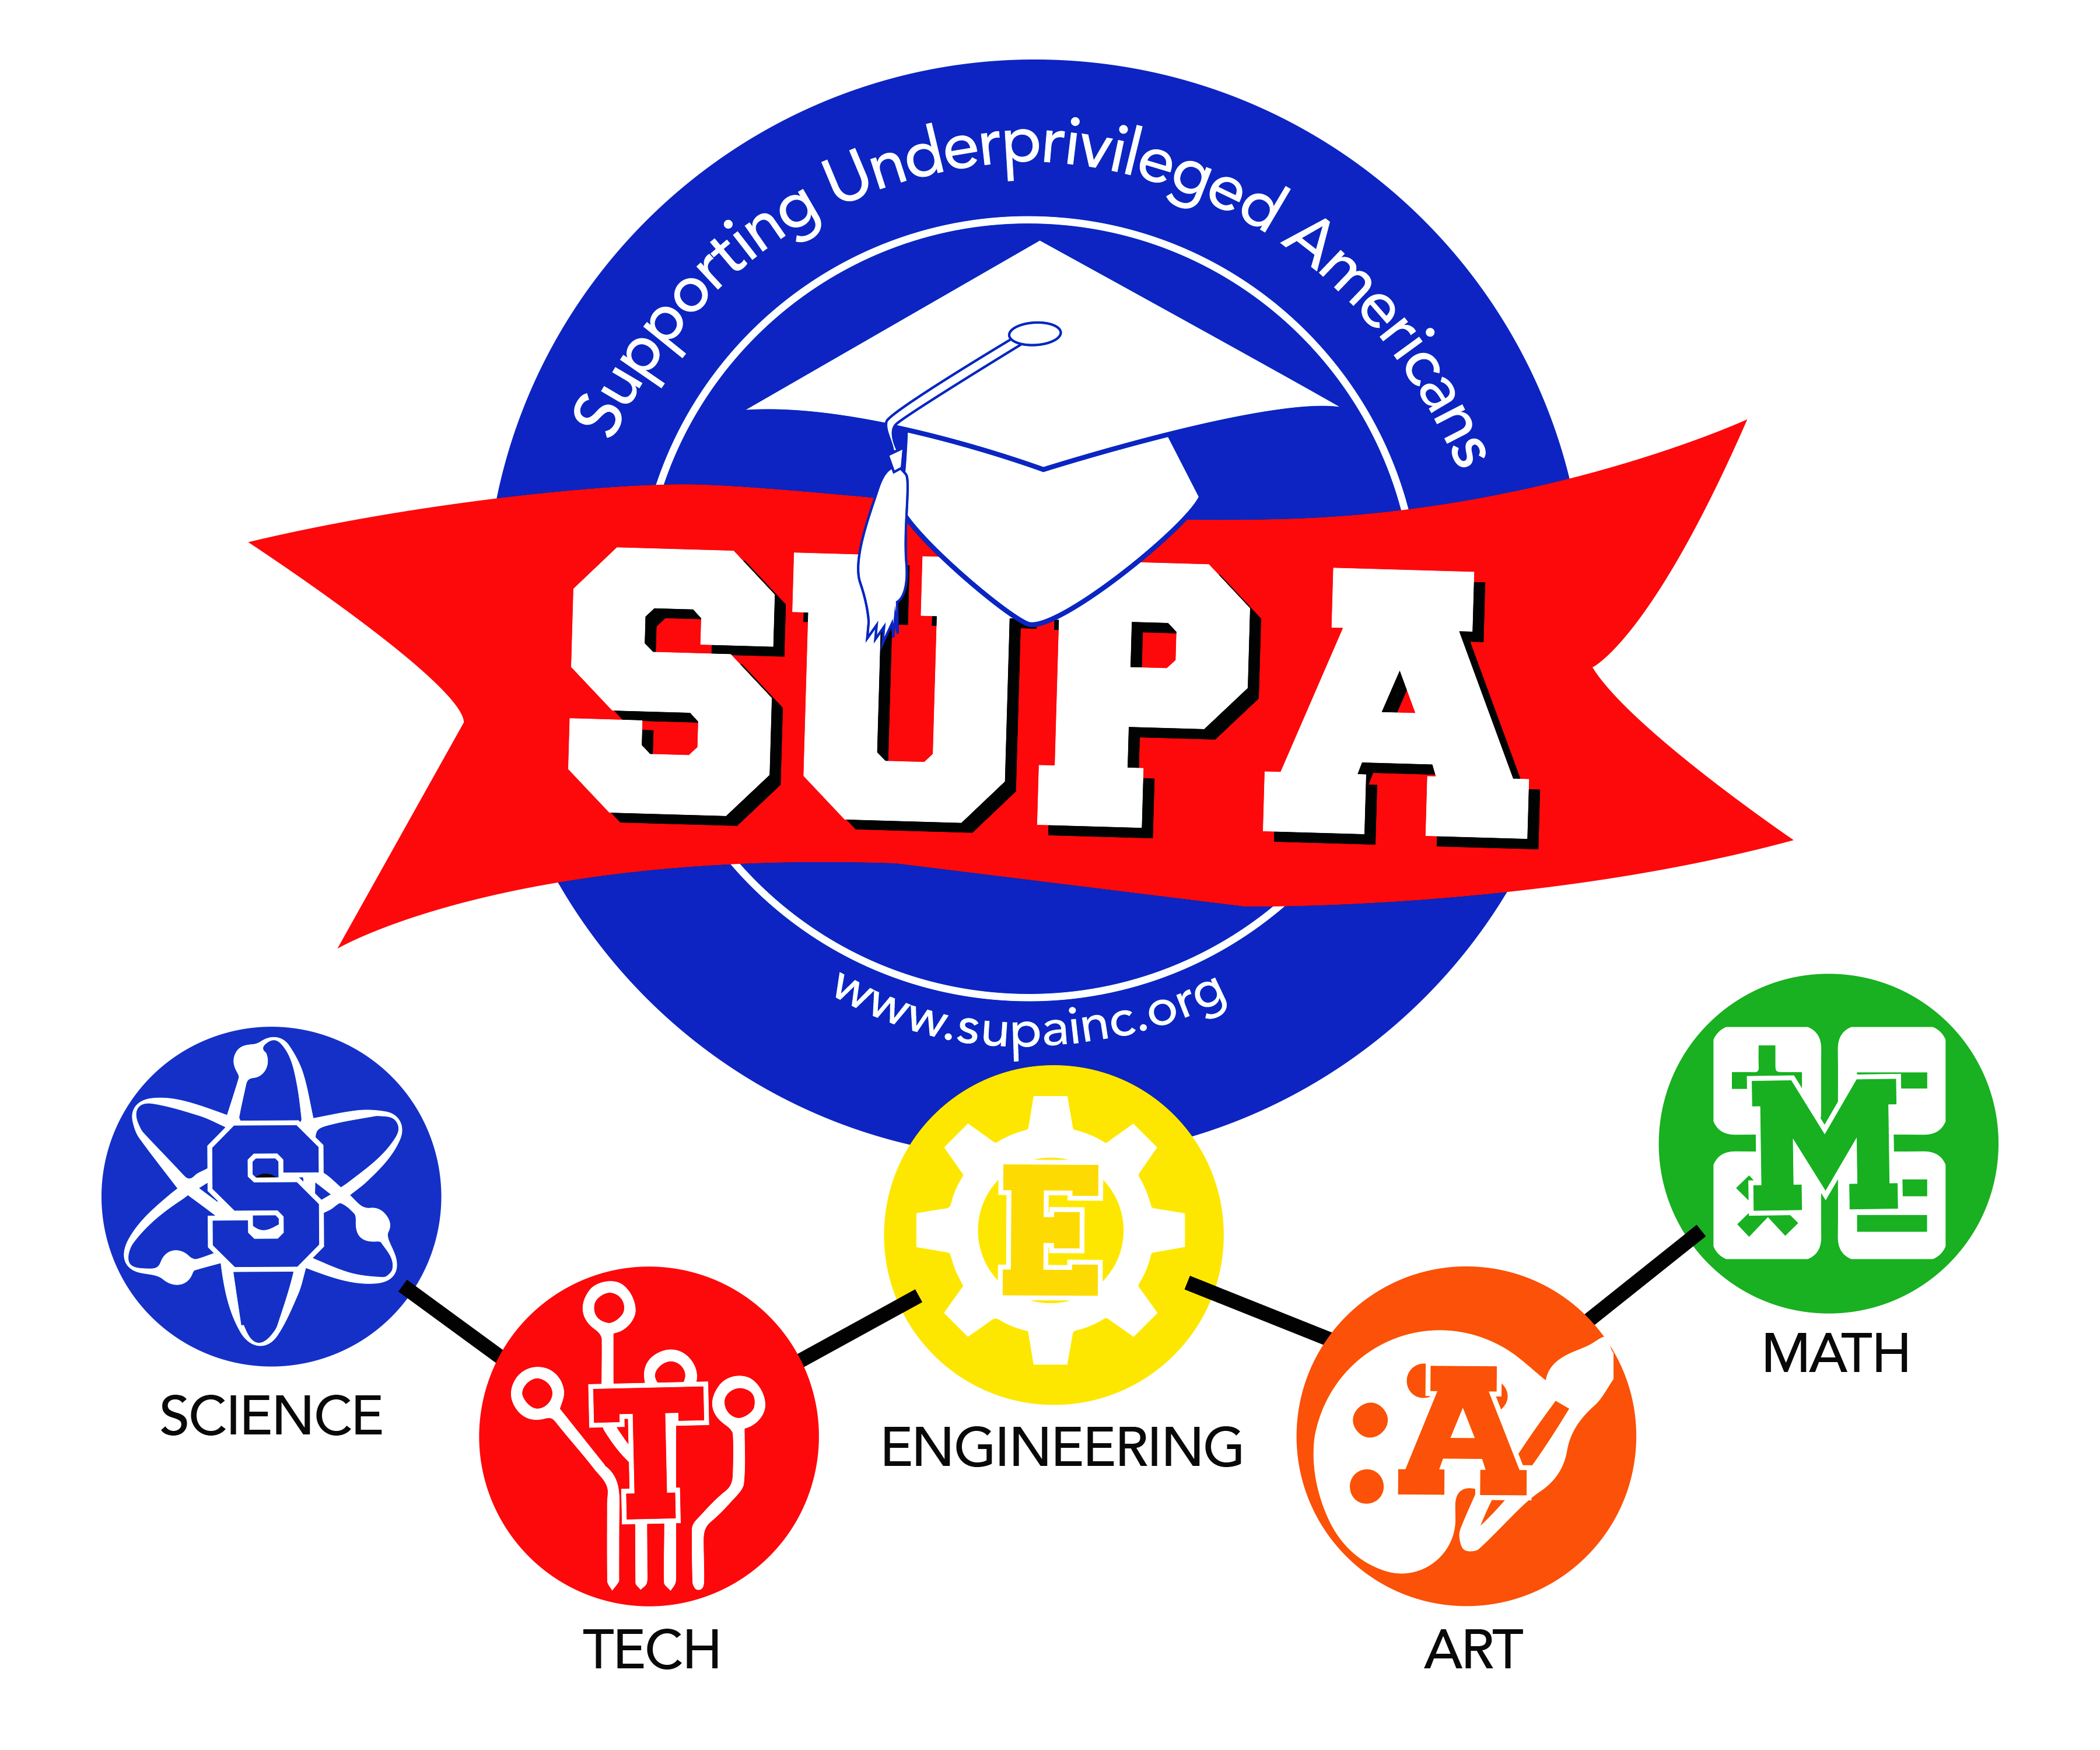 Science Technology Engineering And Math Education For: Supporting Underprivileged Americans, Inc. (SUPA) S.T.E.A